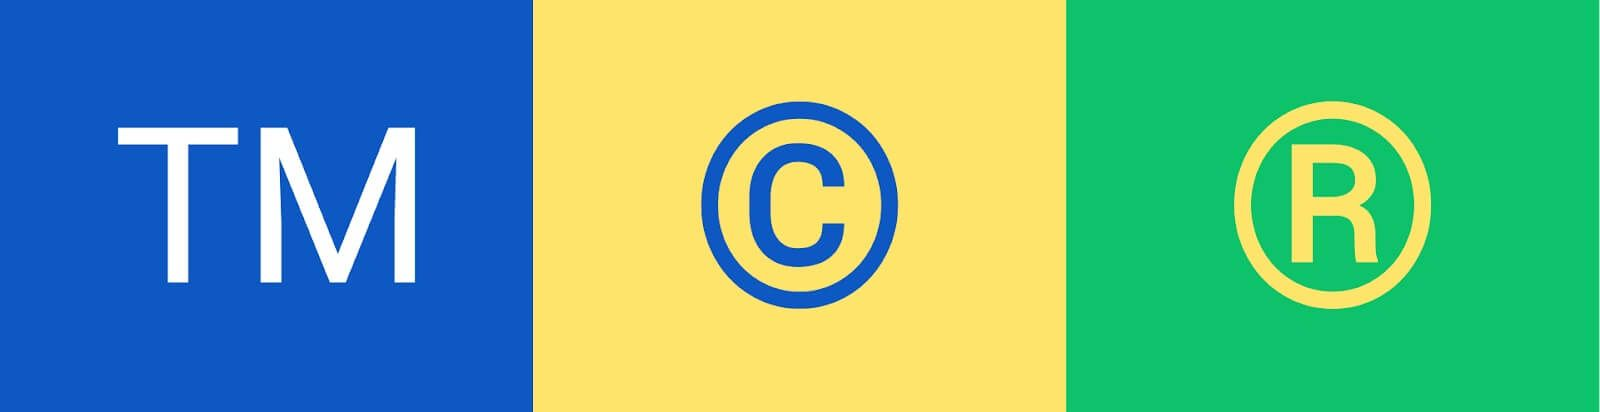 How to protect intellectual property for startups: Trademarks, Copyright, Patents